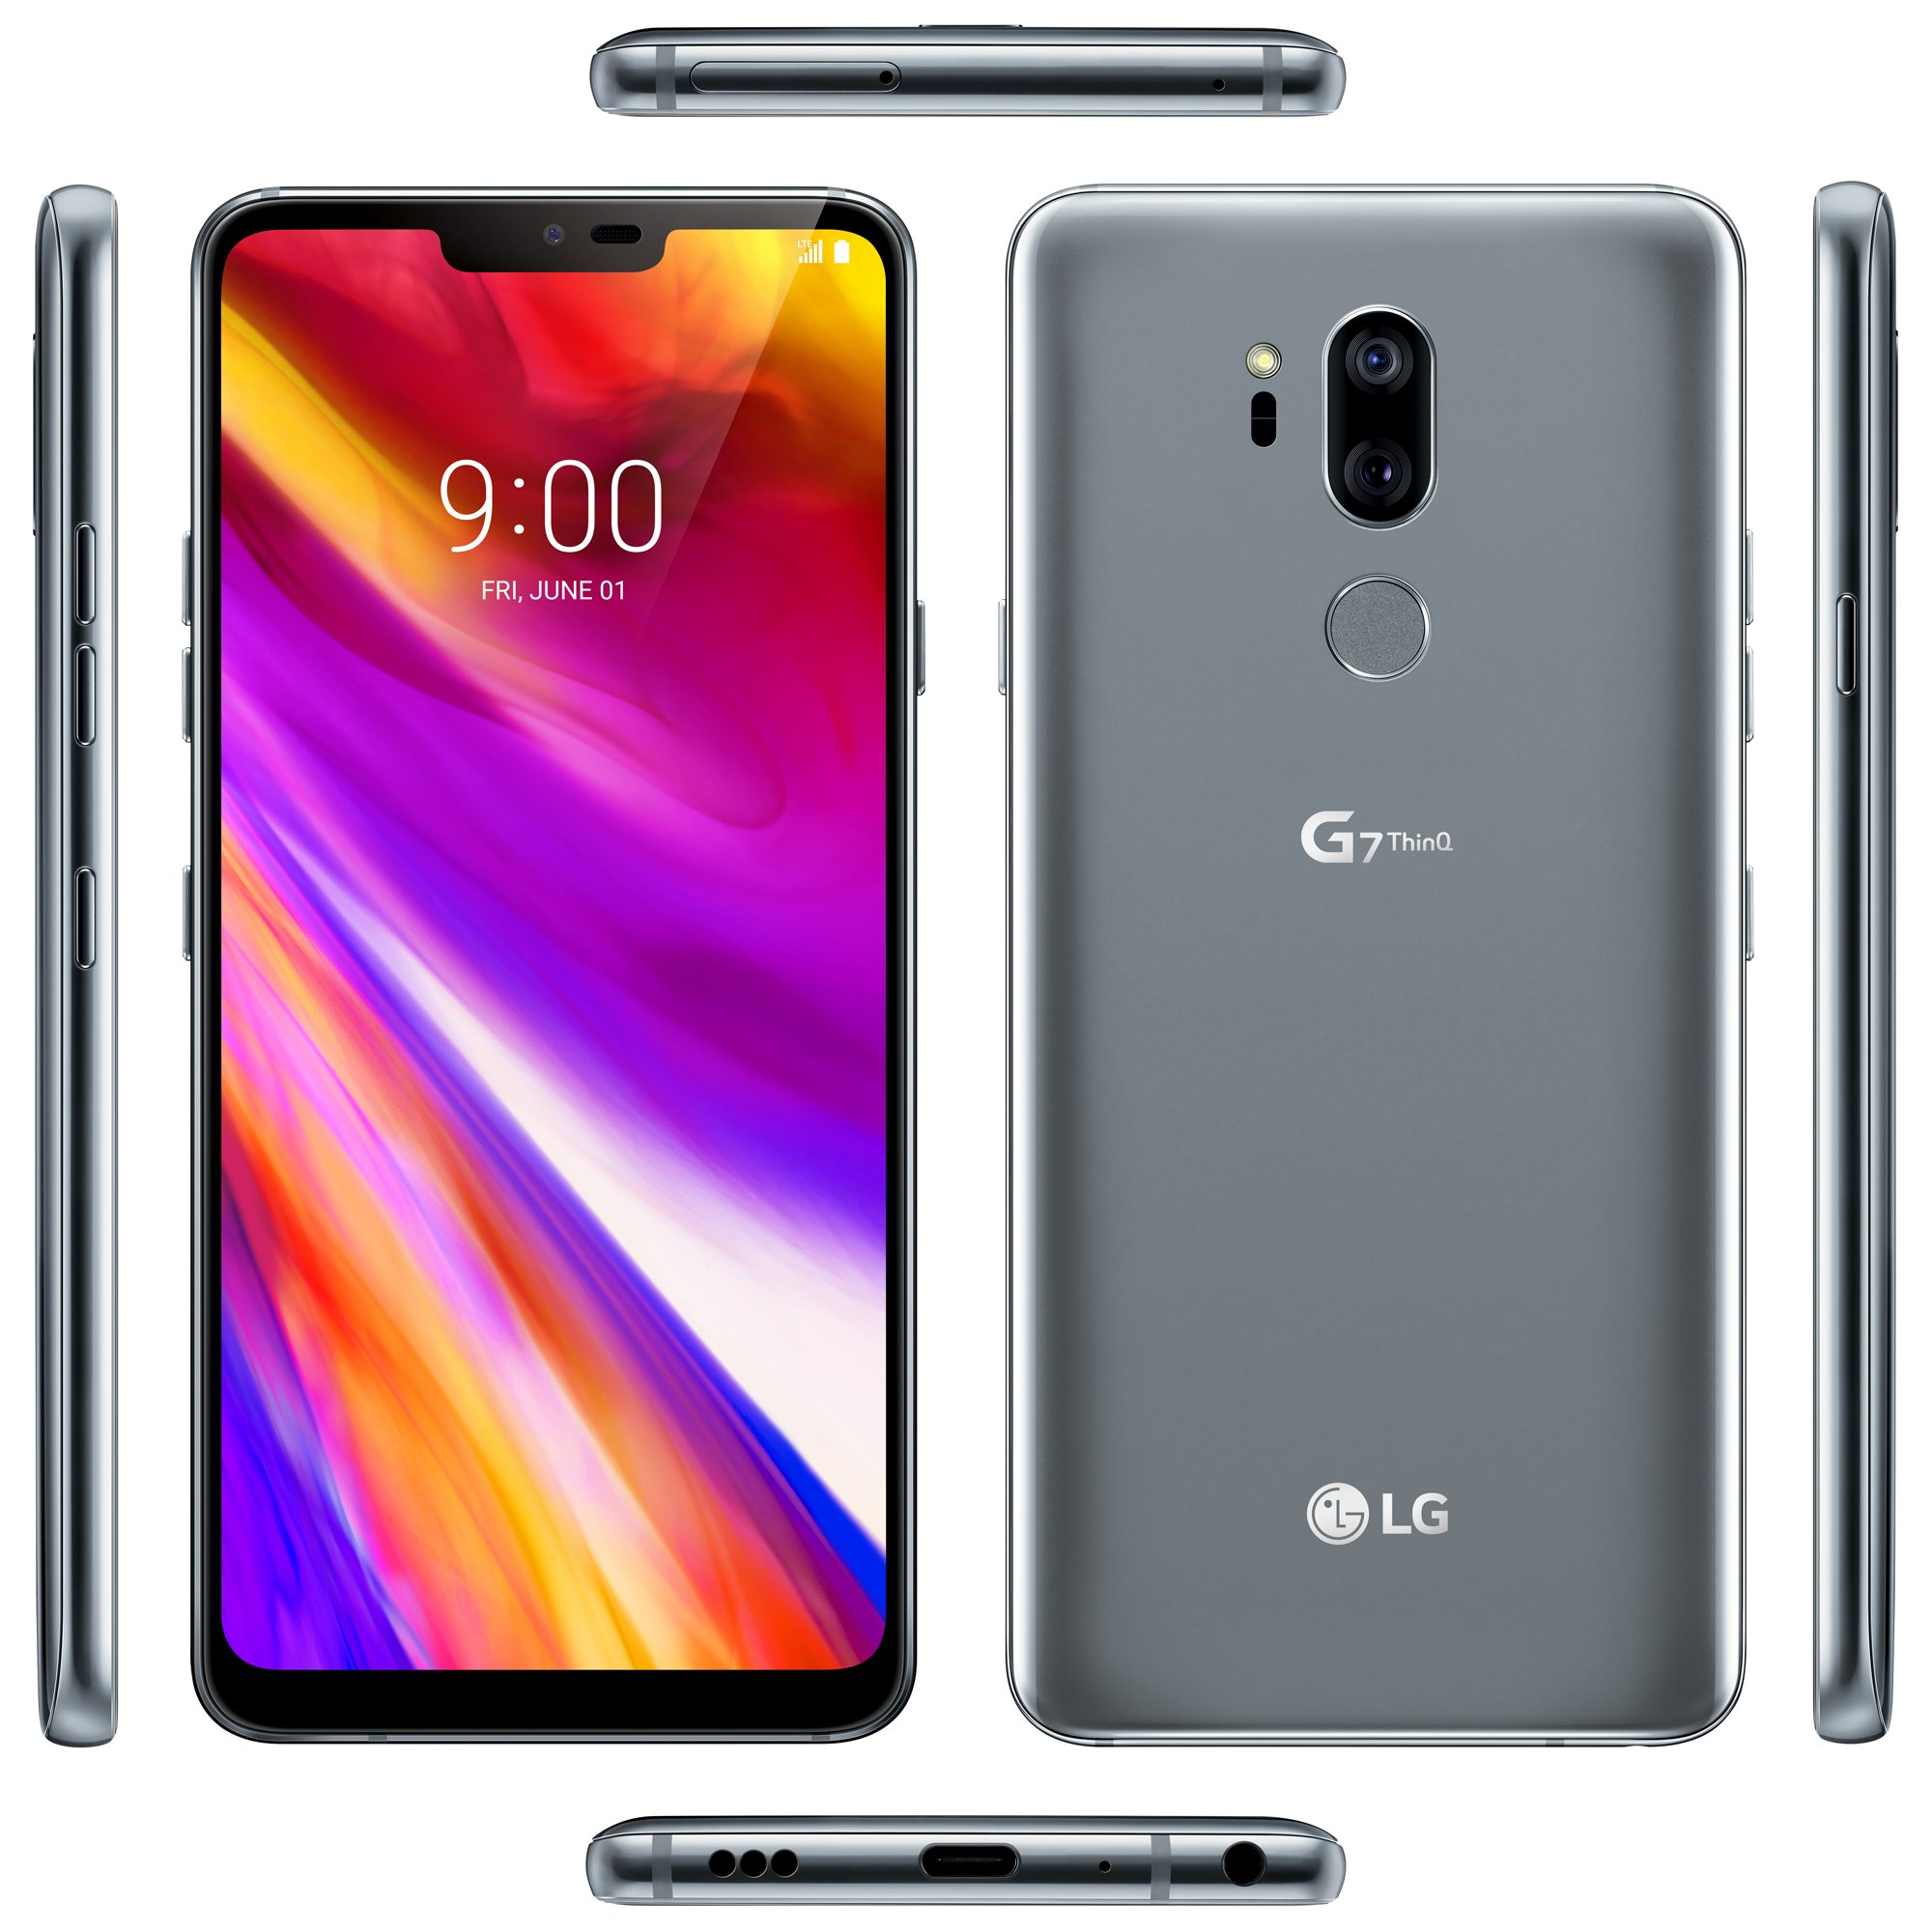 LG G7 ThinQ - Official Renders, Specifications & Pricing 16